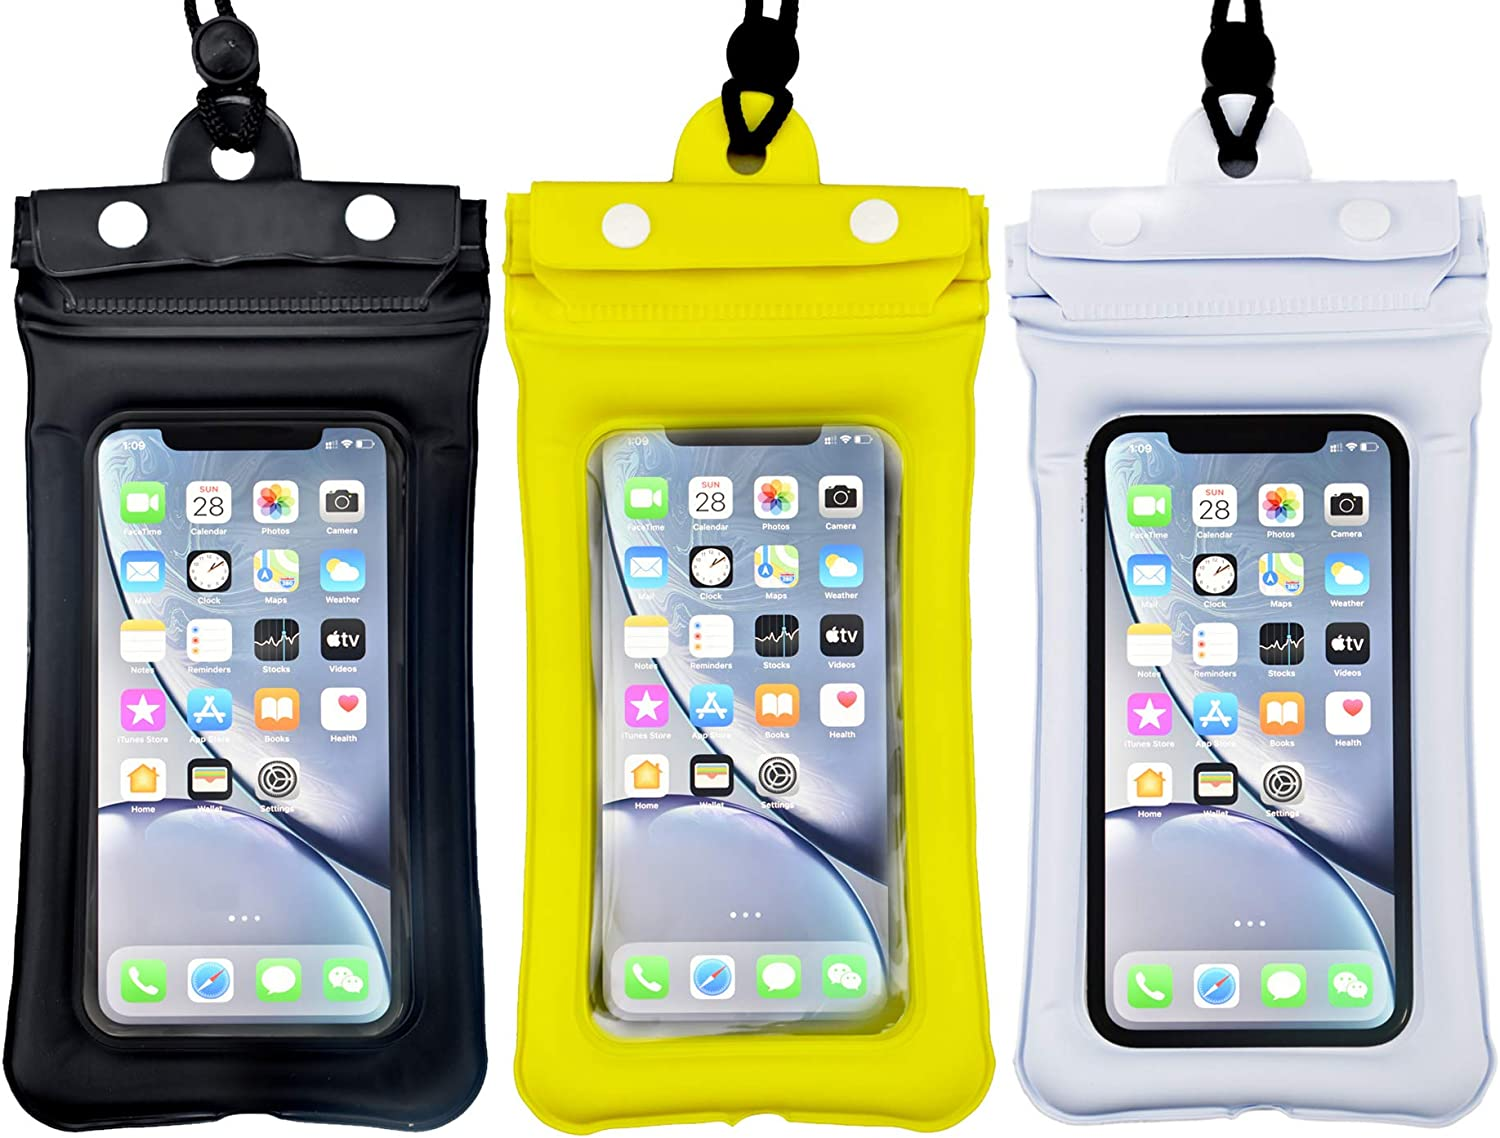 Waterproof Mobile Phone Bag can Float on Water, Three-Layer Waterproof Universal Mobile Phone Drying Bag, with Lanyard, Suitable for 6.5-inch Smartphones, 3 Pieces (Black, Yellow, White)